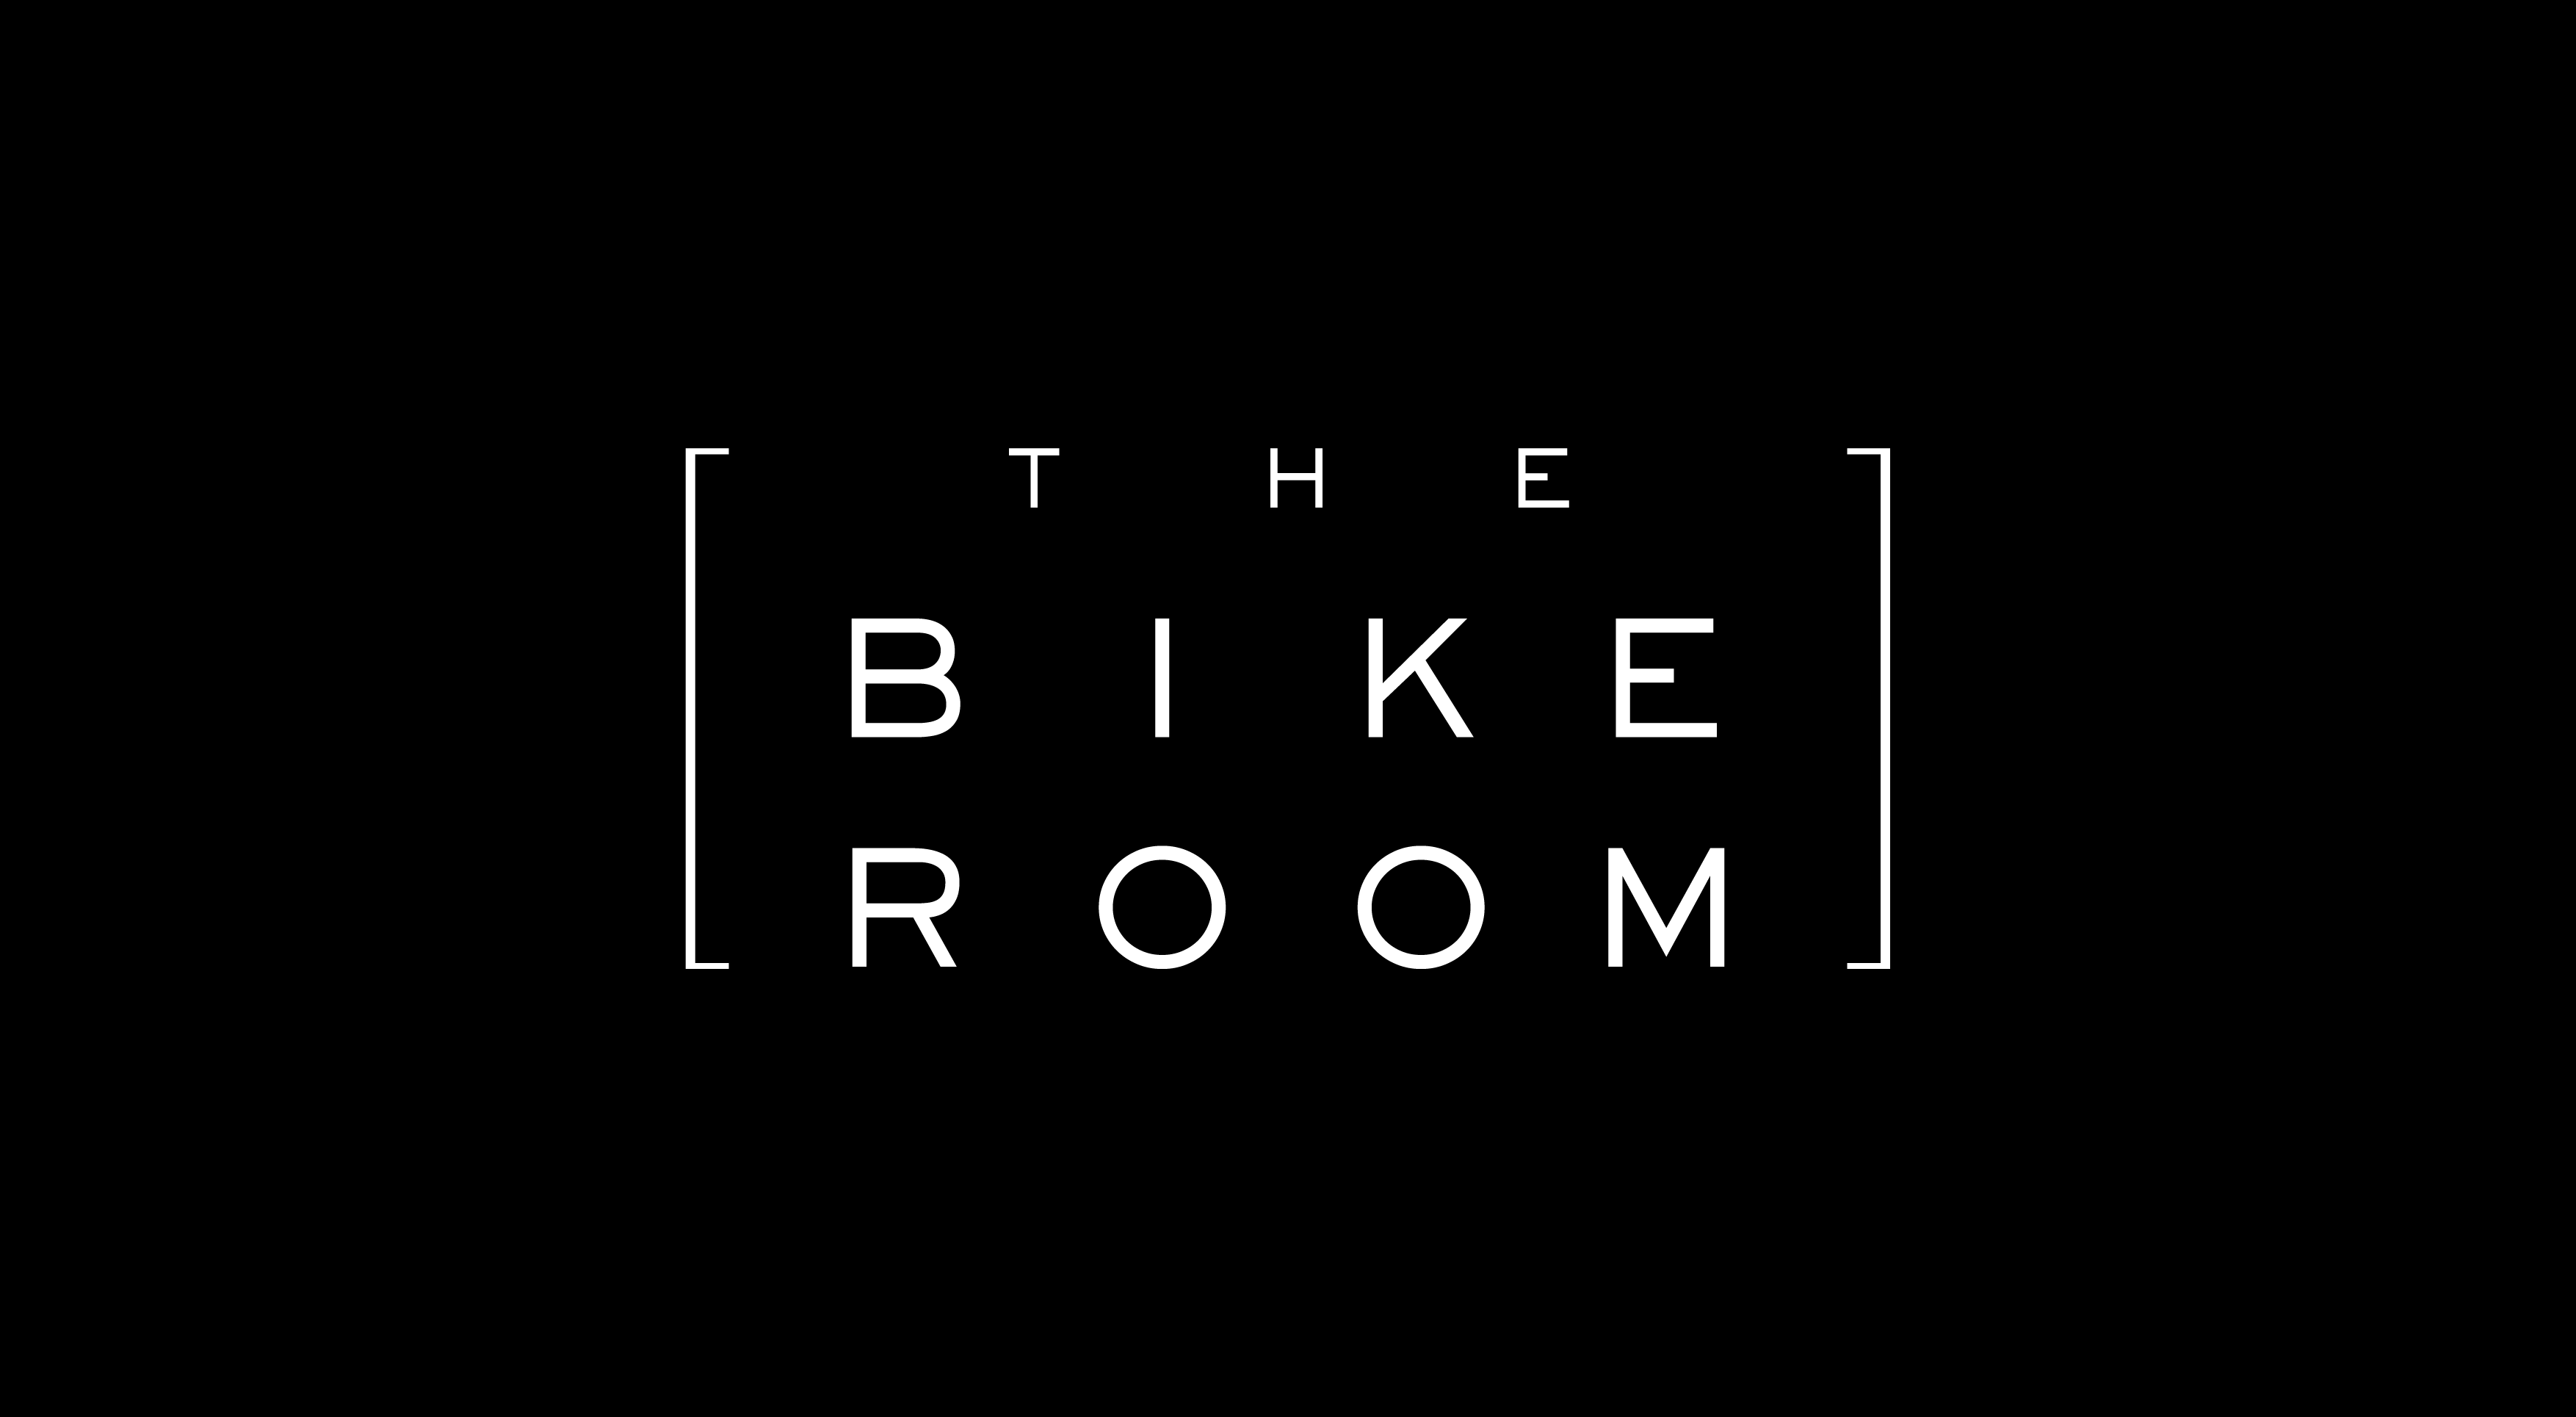 TheBiekRoom